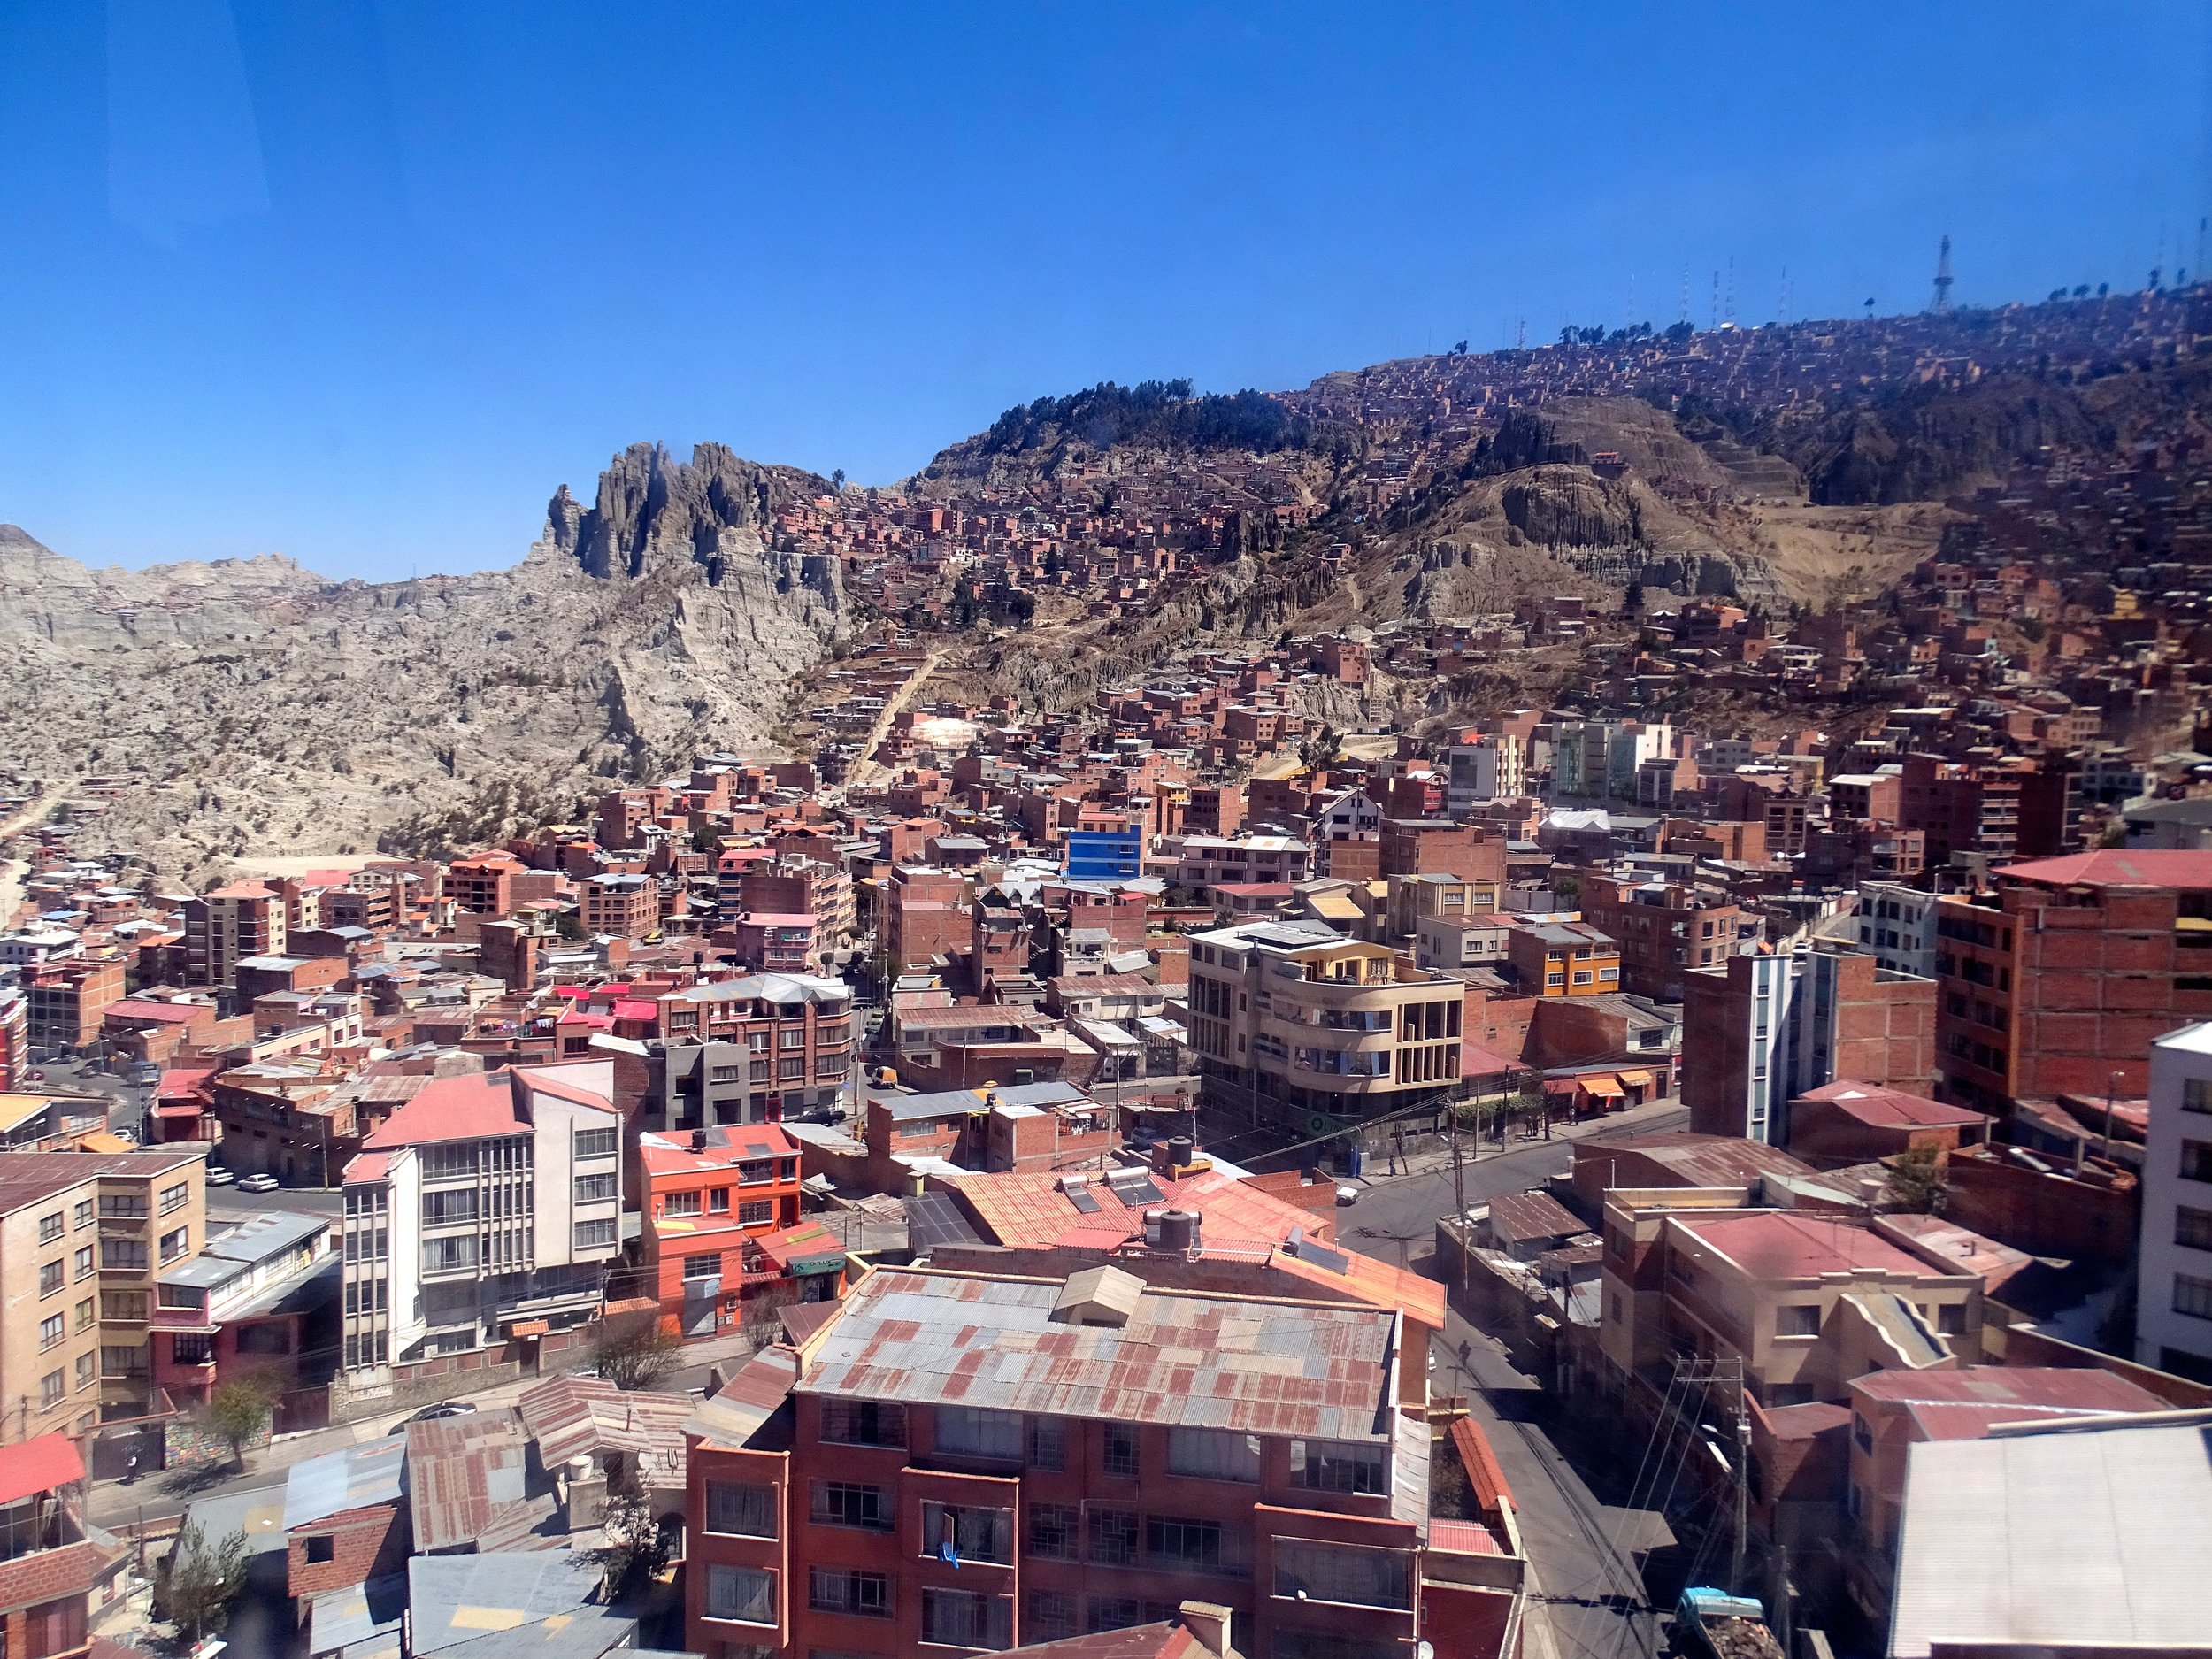 Next few photos: Views from the gondola ride up to the Mirador on the gondola.  La Paz is like a big bowl, and El Alto is above it on the plateau to the left.